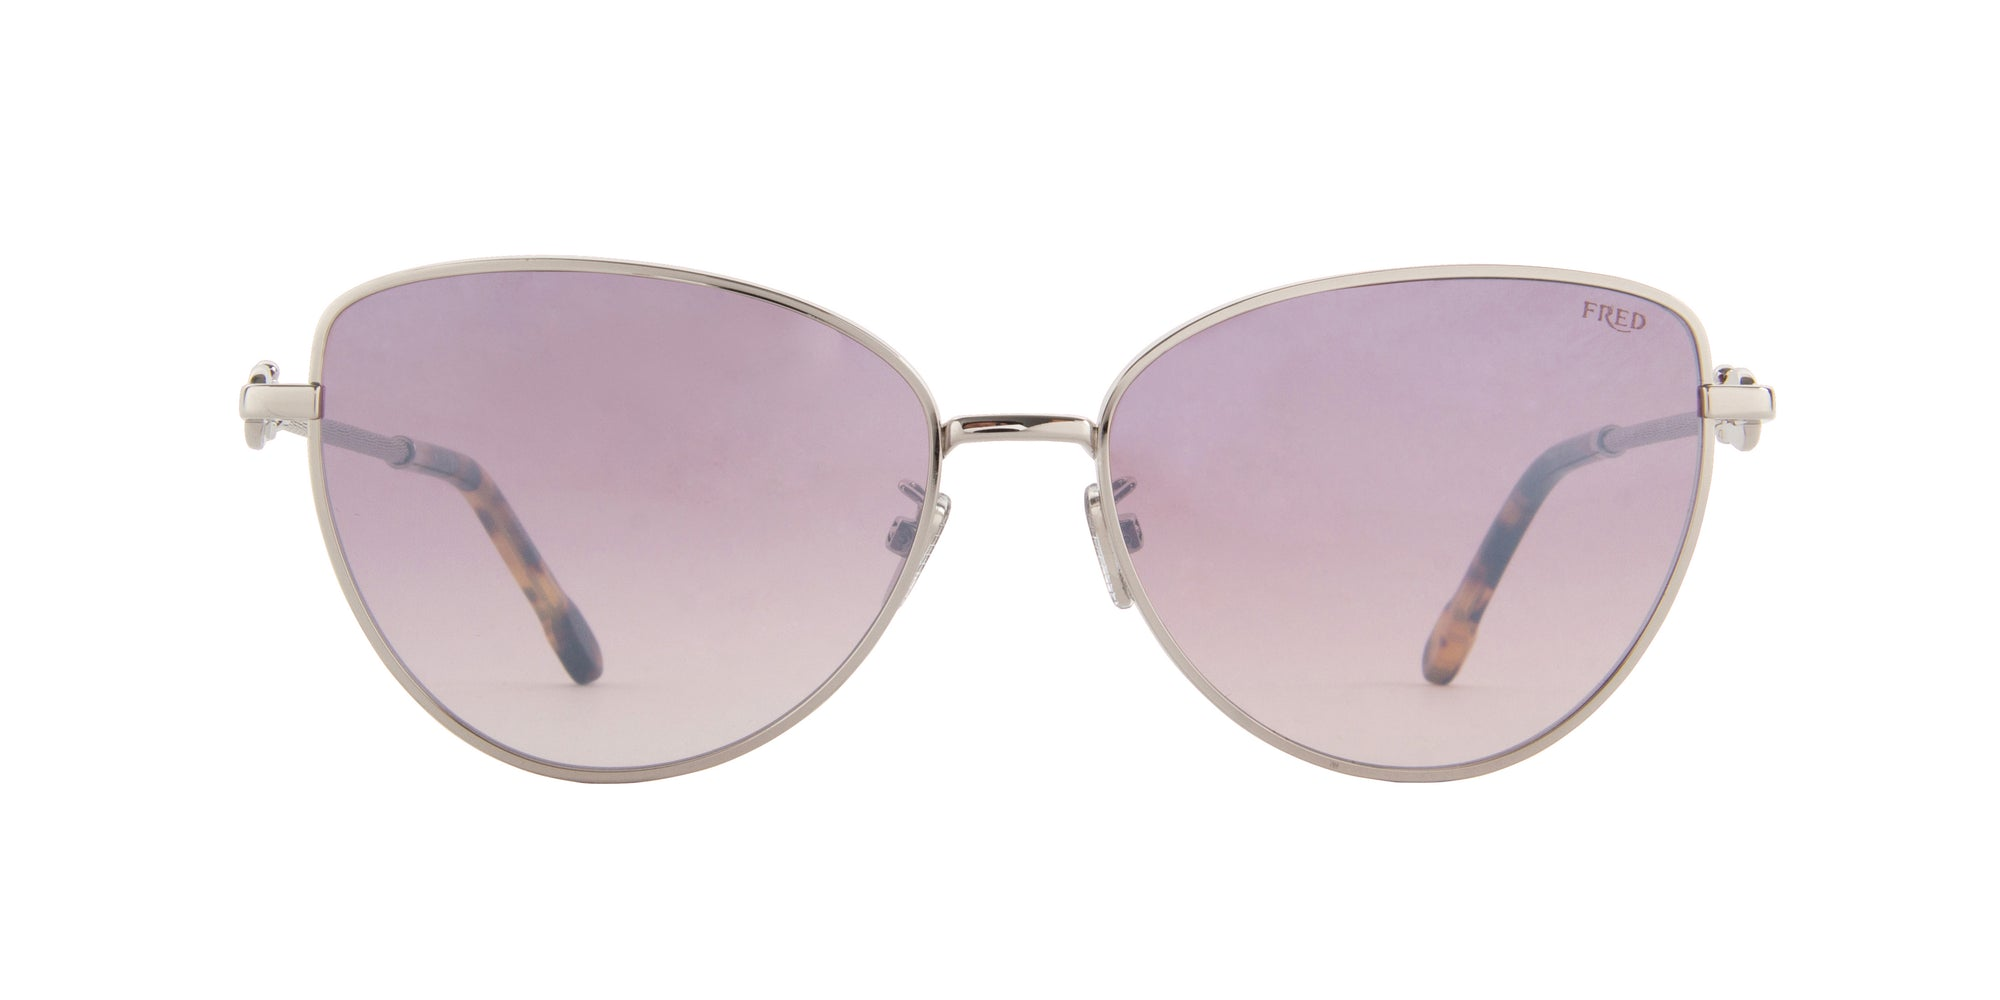 Fred - FG40015U Shiny Rhodium Cat Eye Sunglasses - 59mm-Sunglasses-Designer Eyes